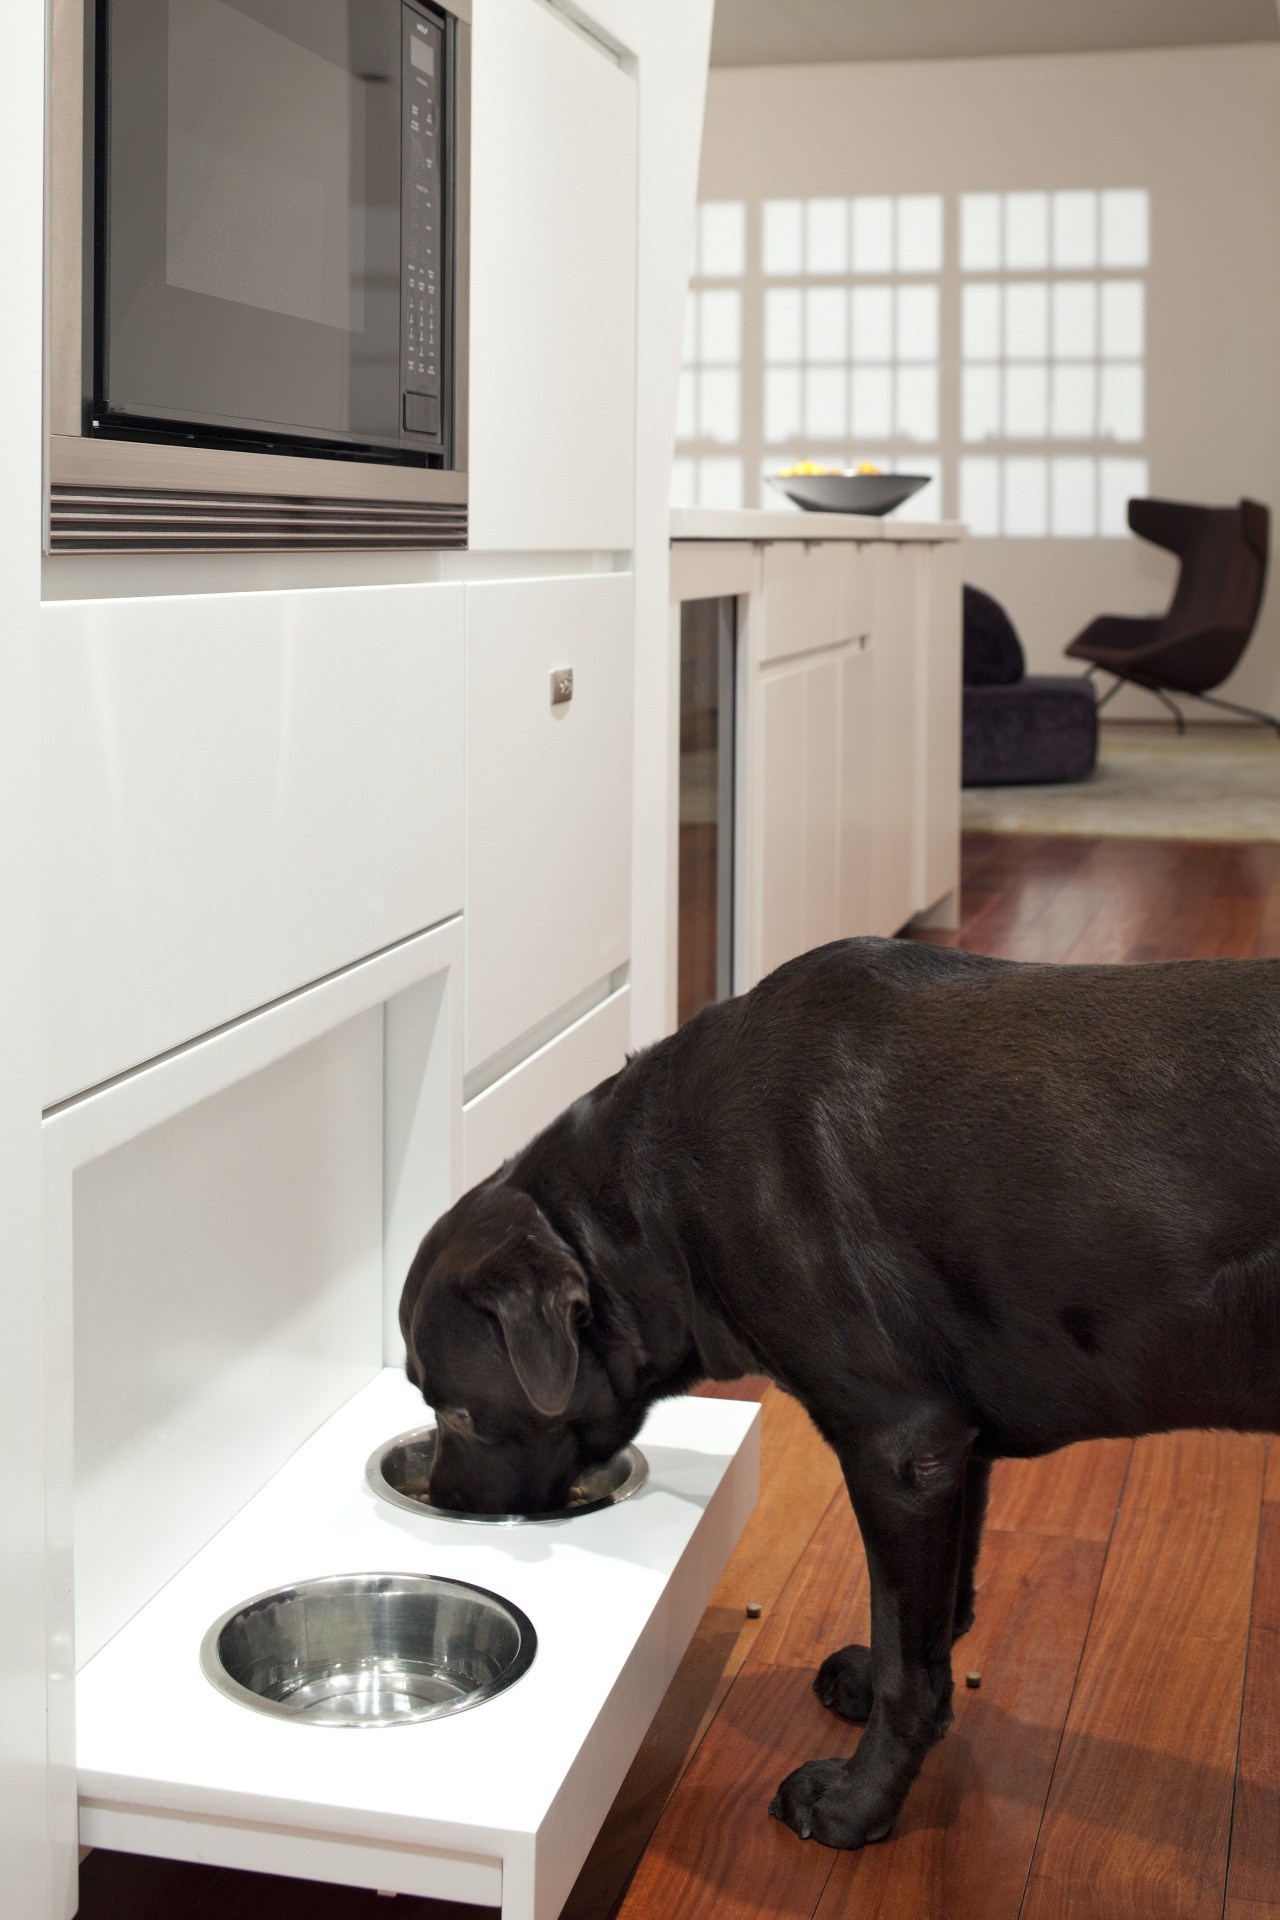 Here is a view of a kitchen designed black, dog, dog like mammal, floor, flooring, furniture, home, interior design, living room, room, table, wood, gray